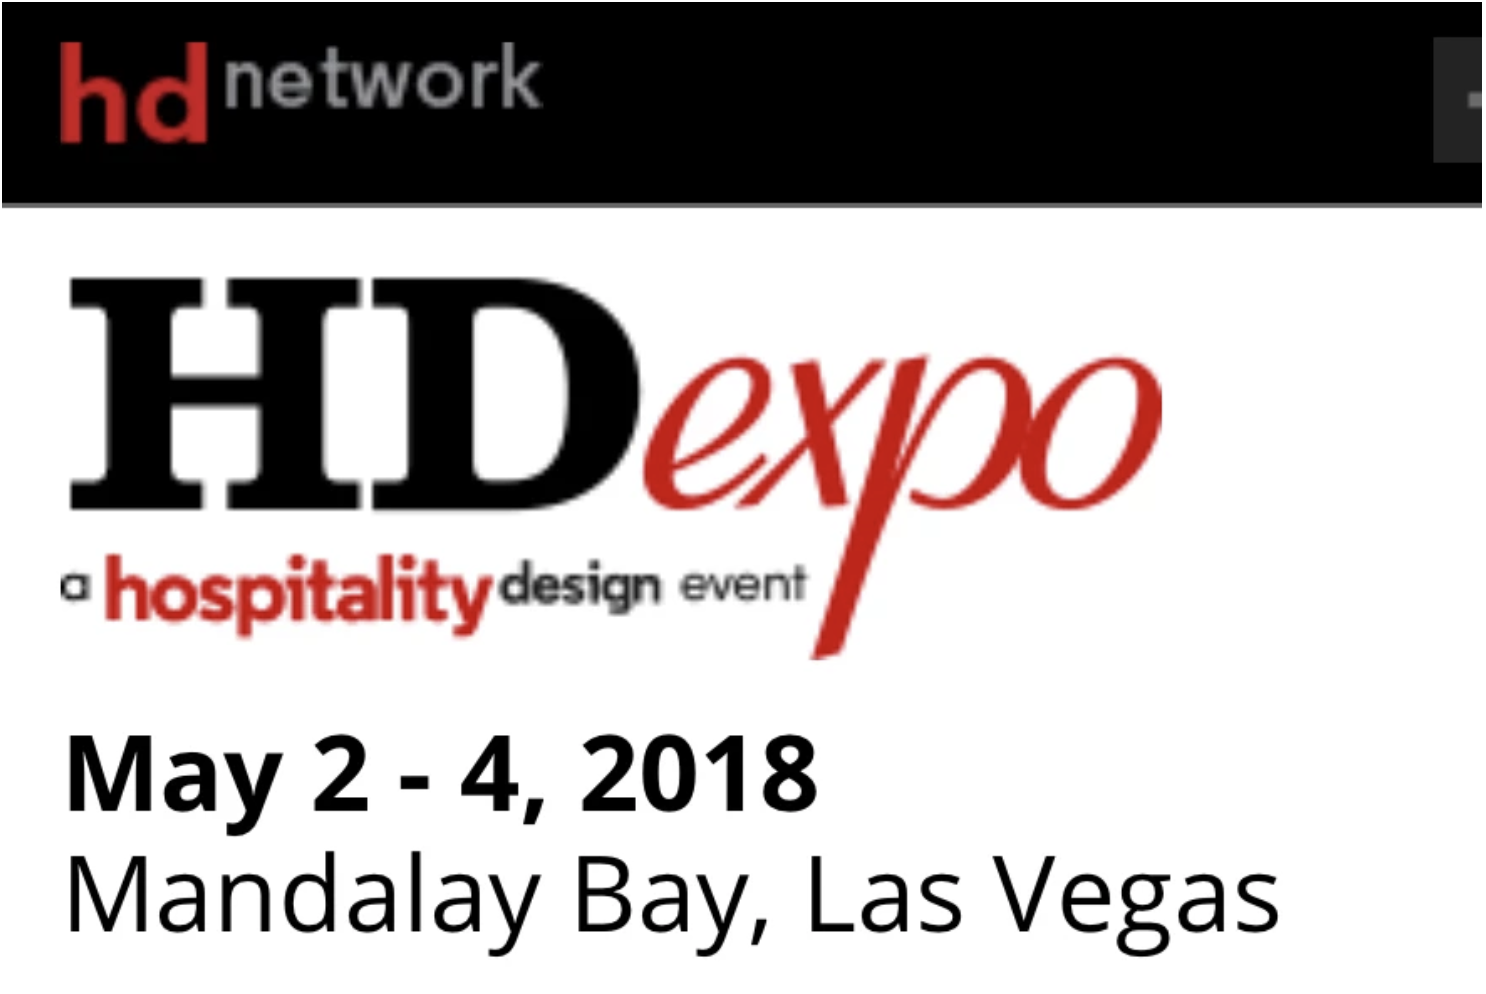 MG Shlachter at the HD Expo 2018 in Las Vegas